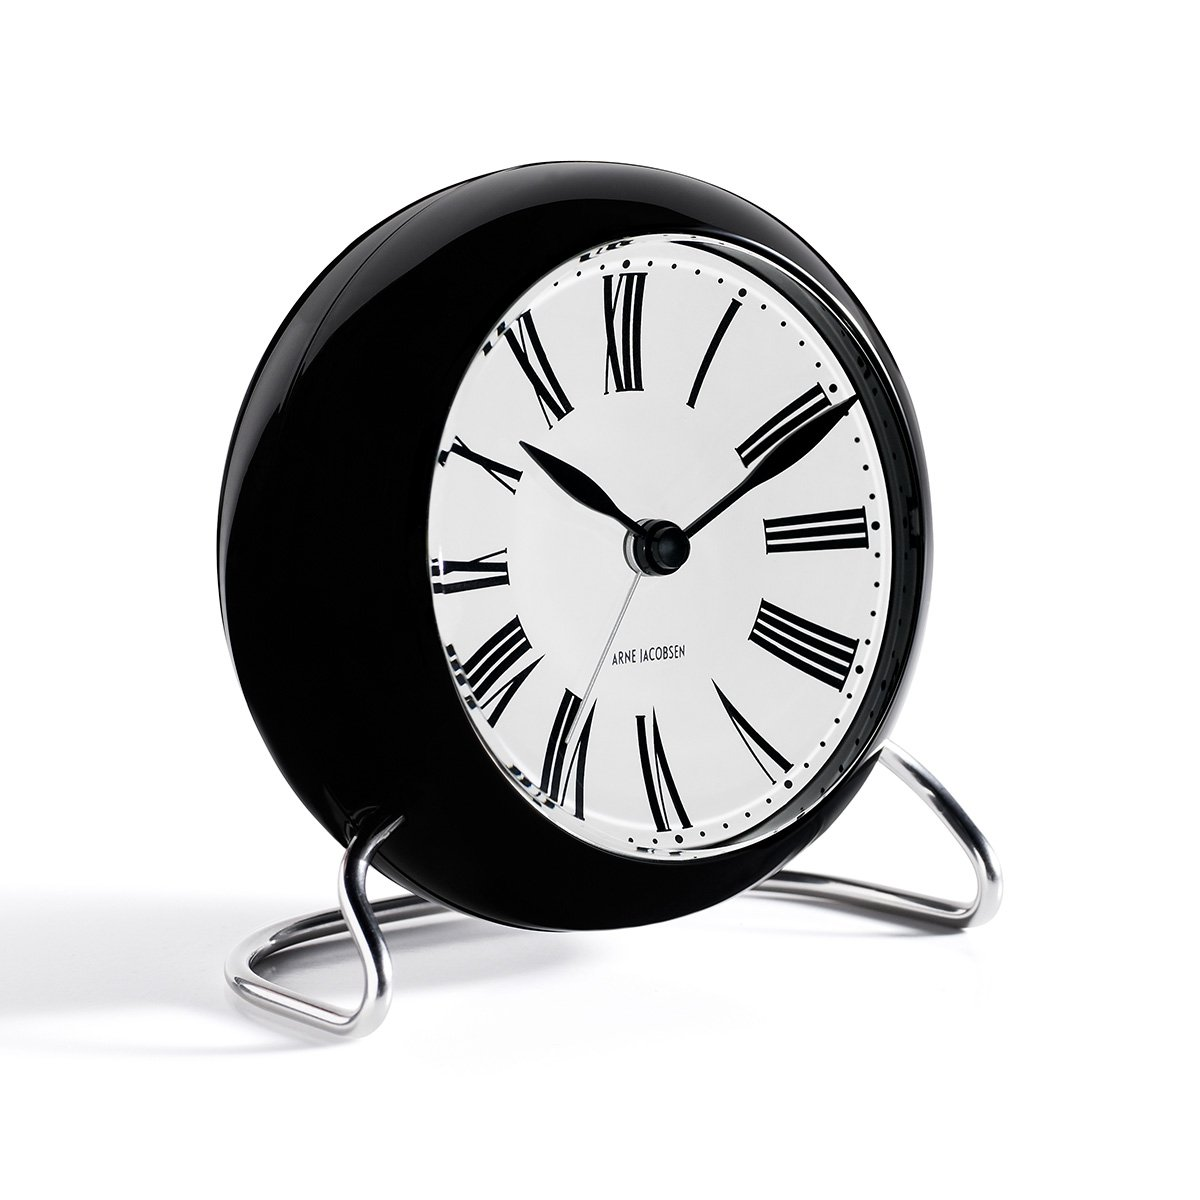 Arne Jacobsen Table Clock Roman with Alarm by Arne Jacobsen